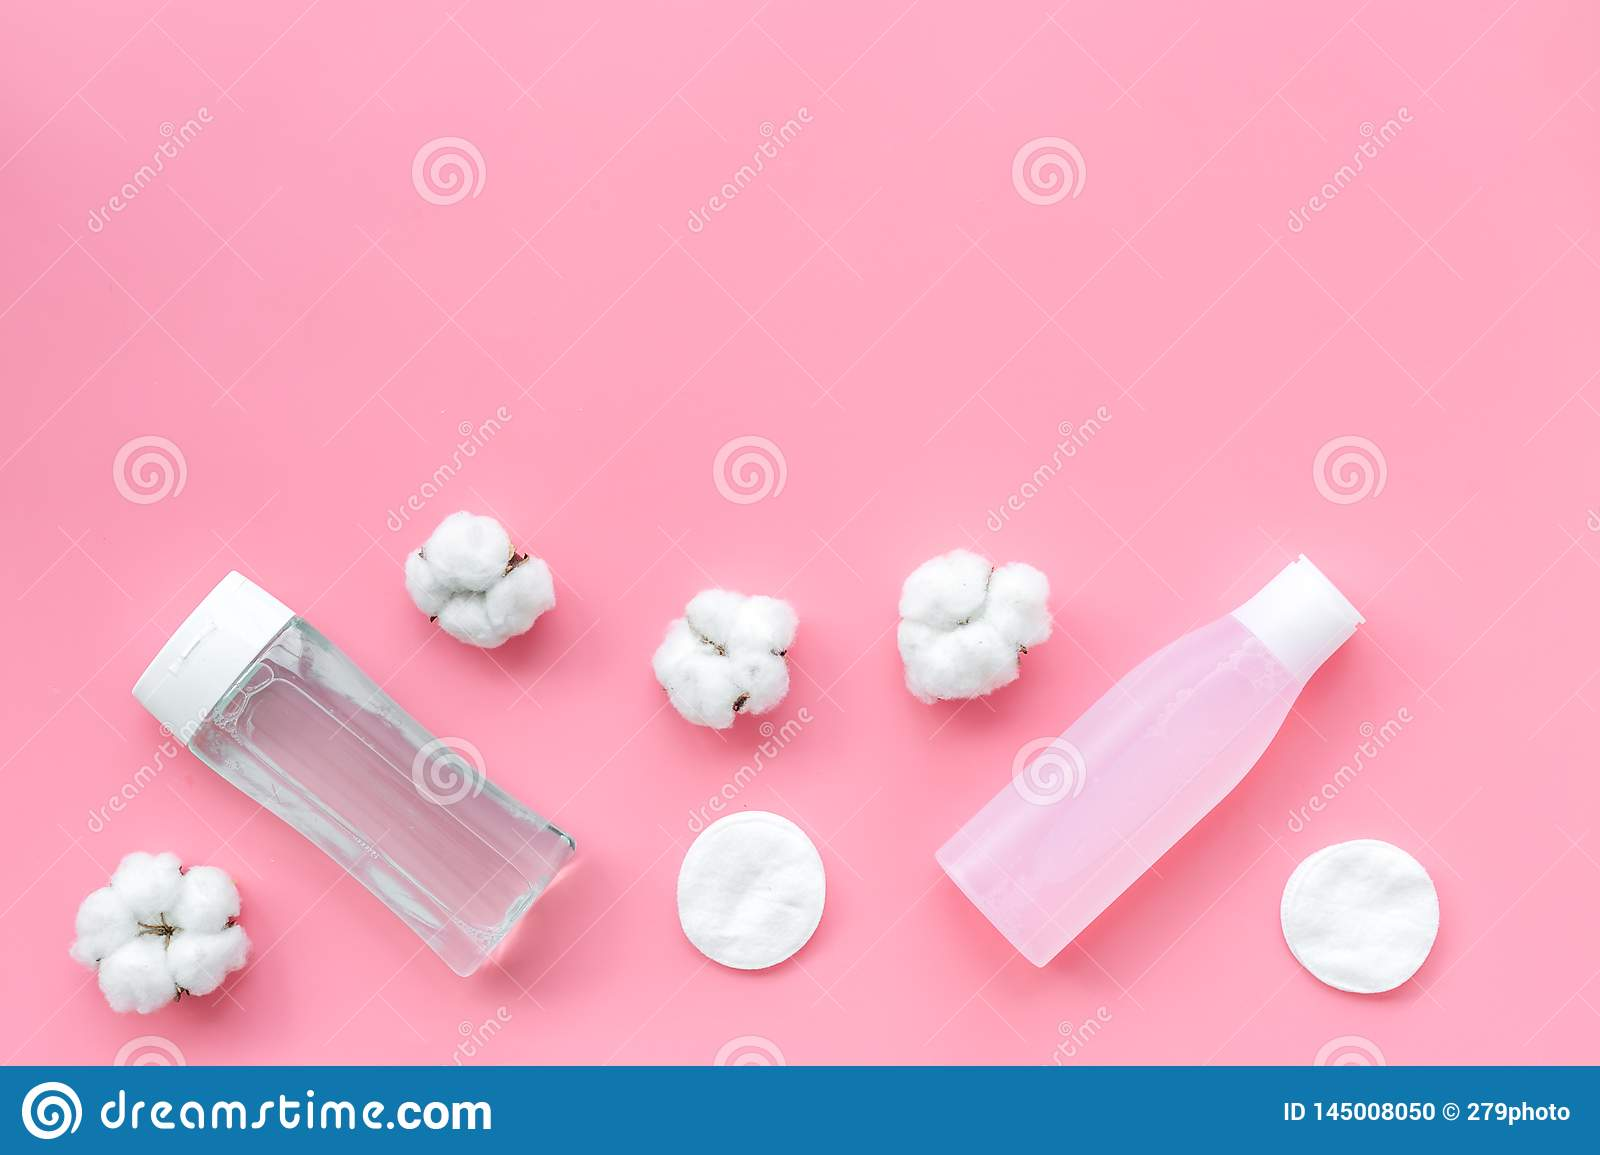 Mycelial water, lotion and cotton pads for skin care on pink background flat lay space for text